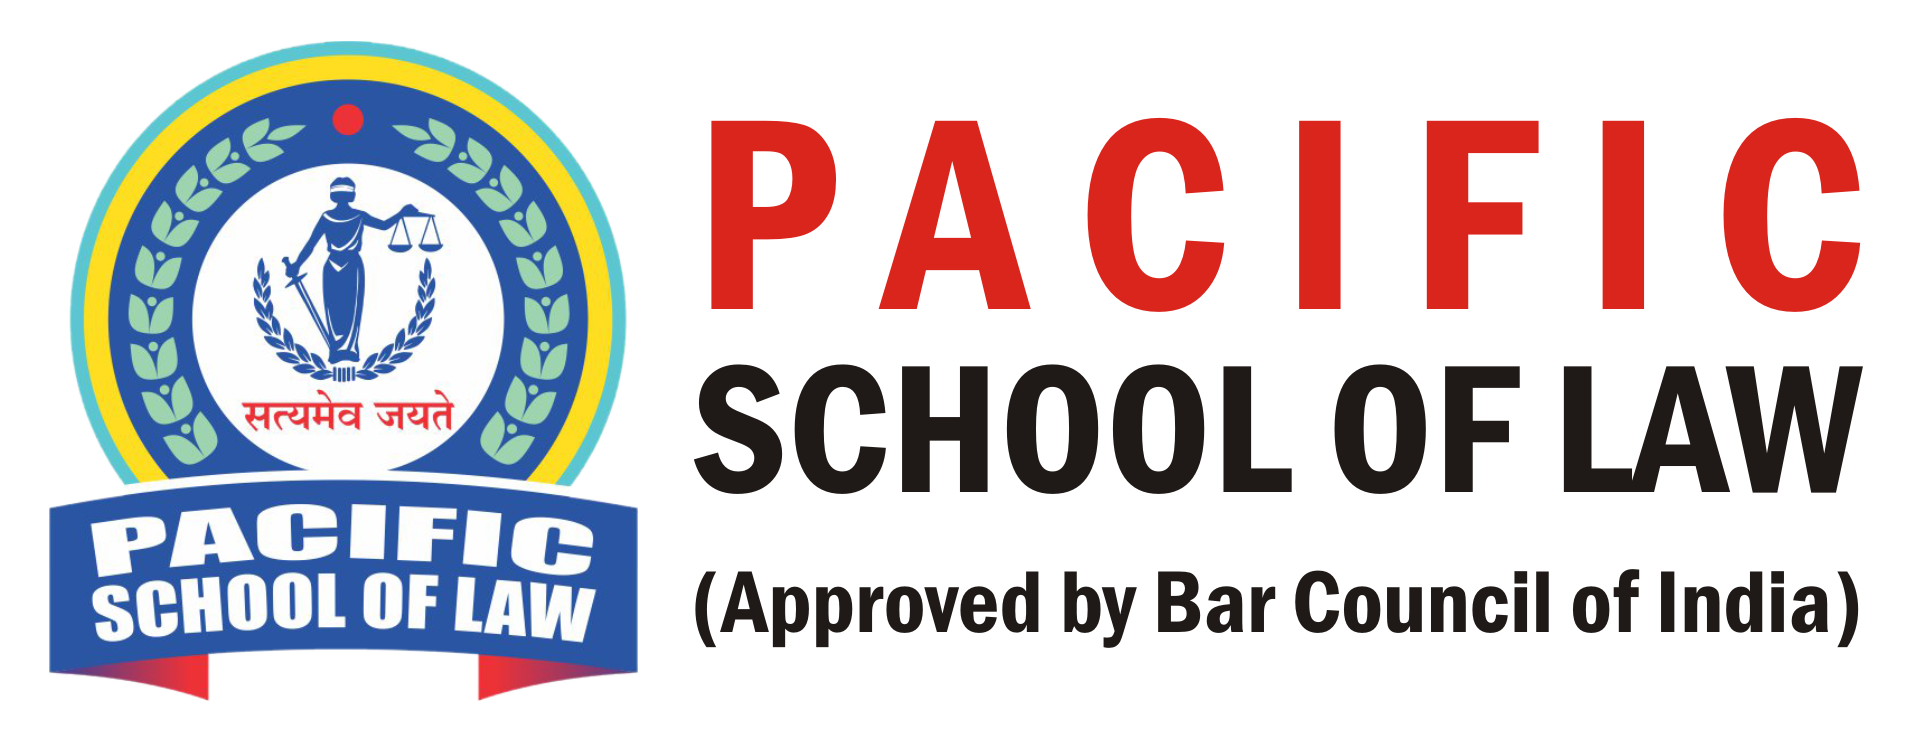 Pacific School of Law